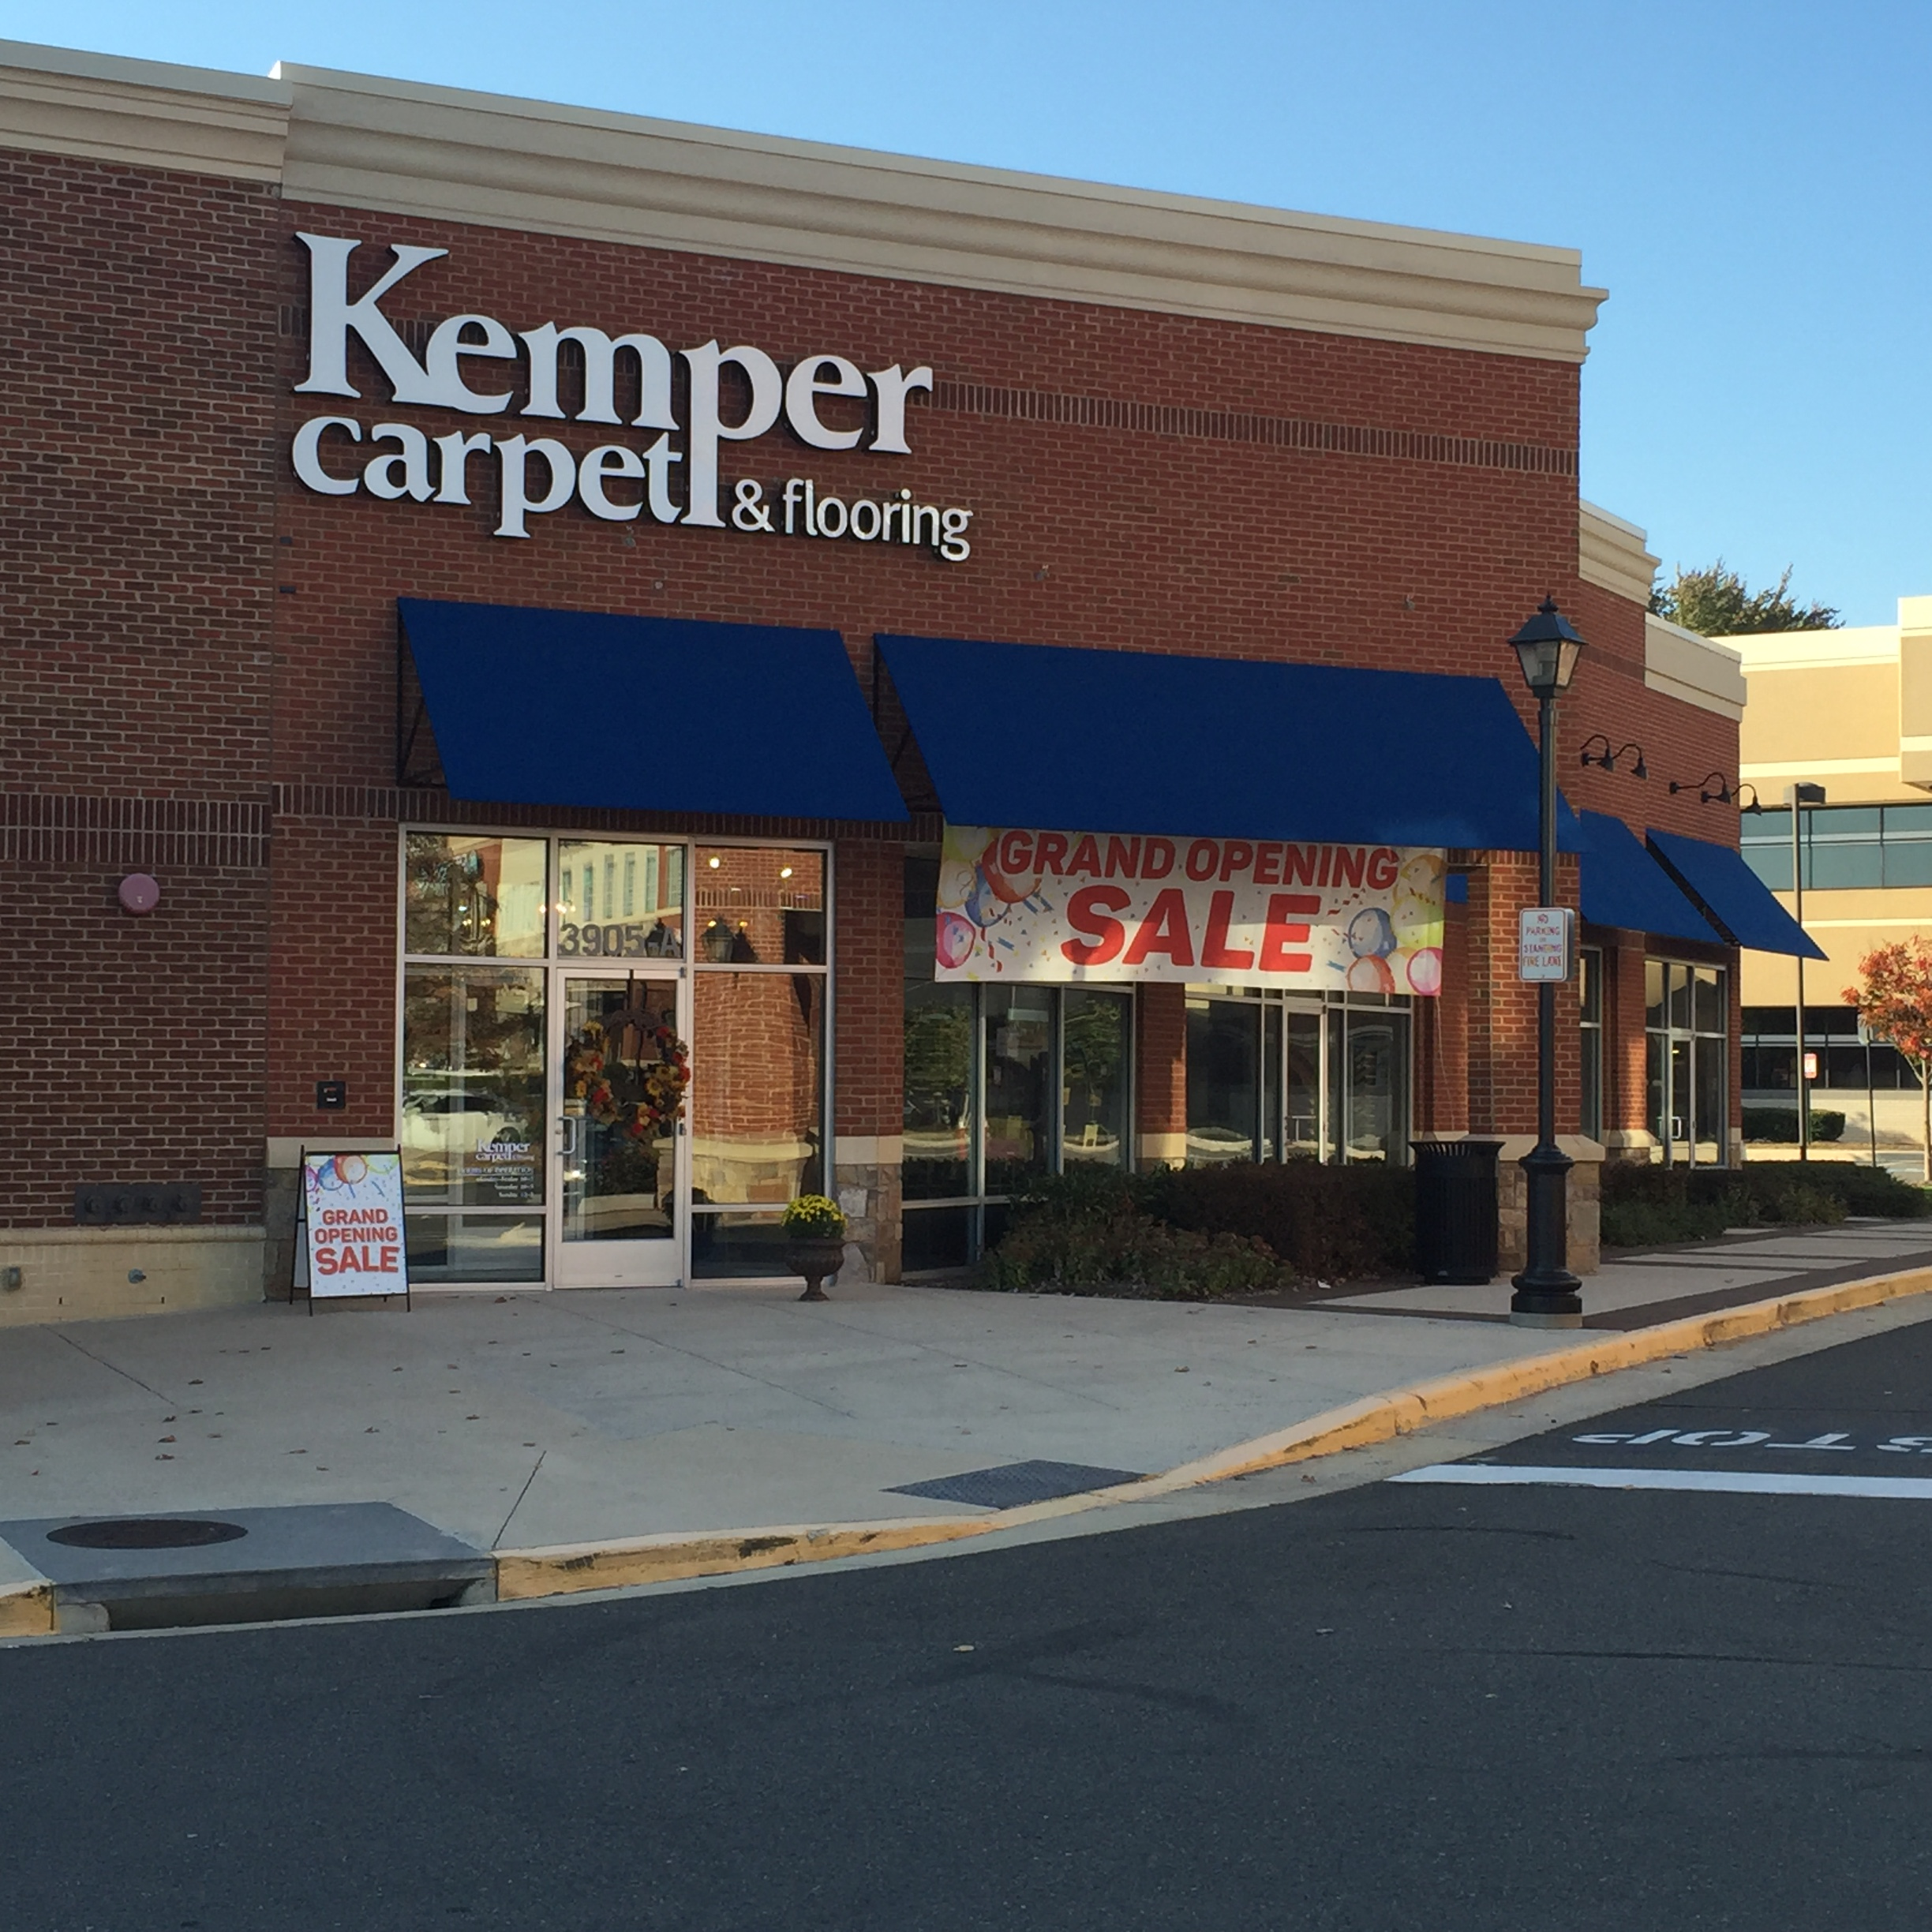 Kemper Carpet & Flooring - 3905a Fair Ridge Dr Fairfax, VA 22033